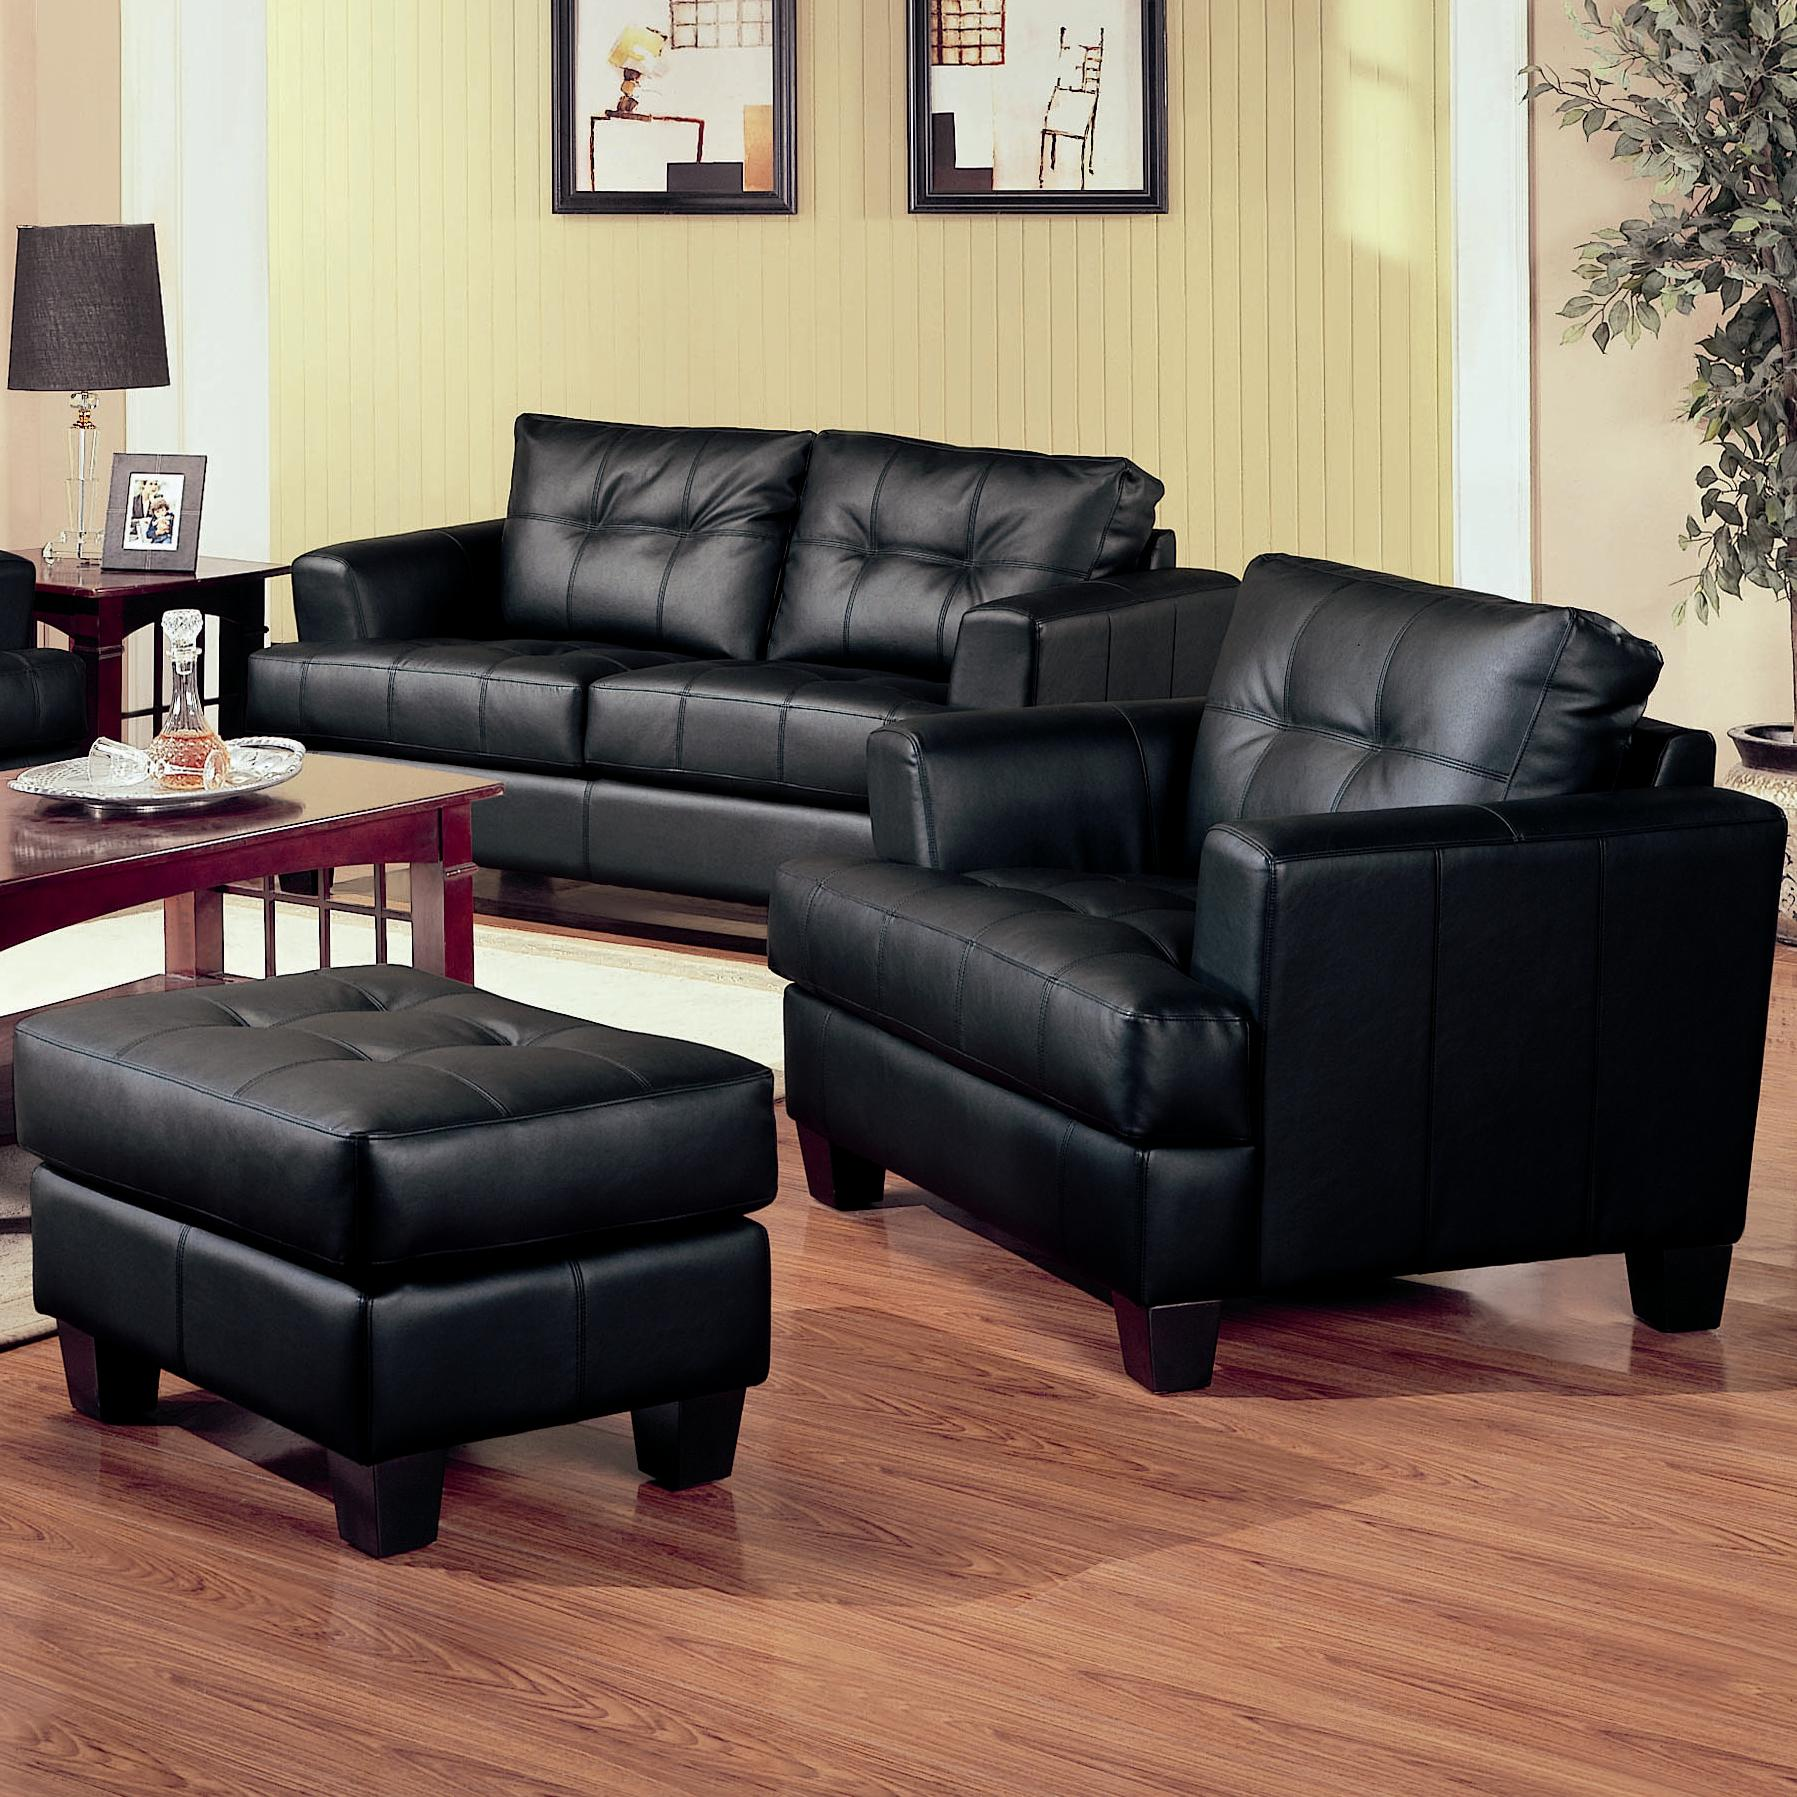 Samuel Chair and Ottoman by Coaster at Furniture Superstore - Rochester, MN